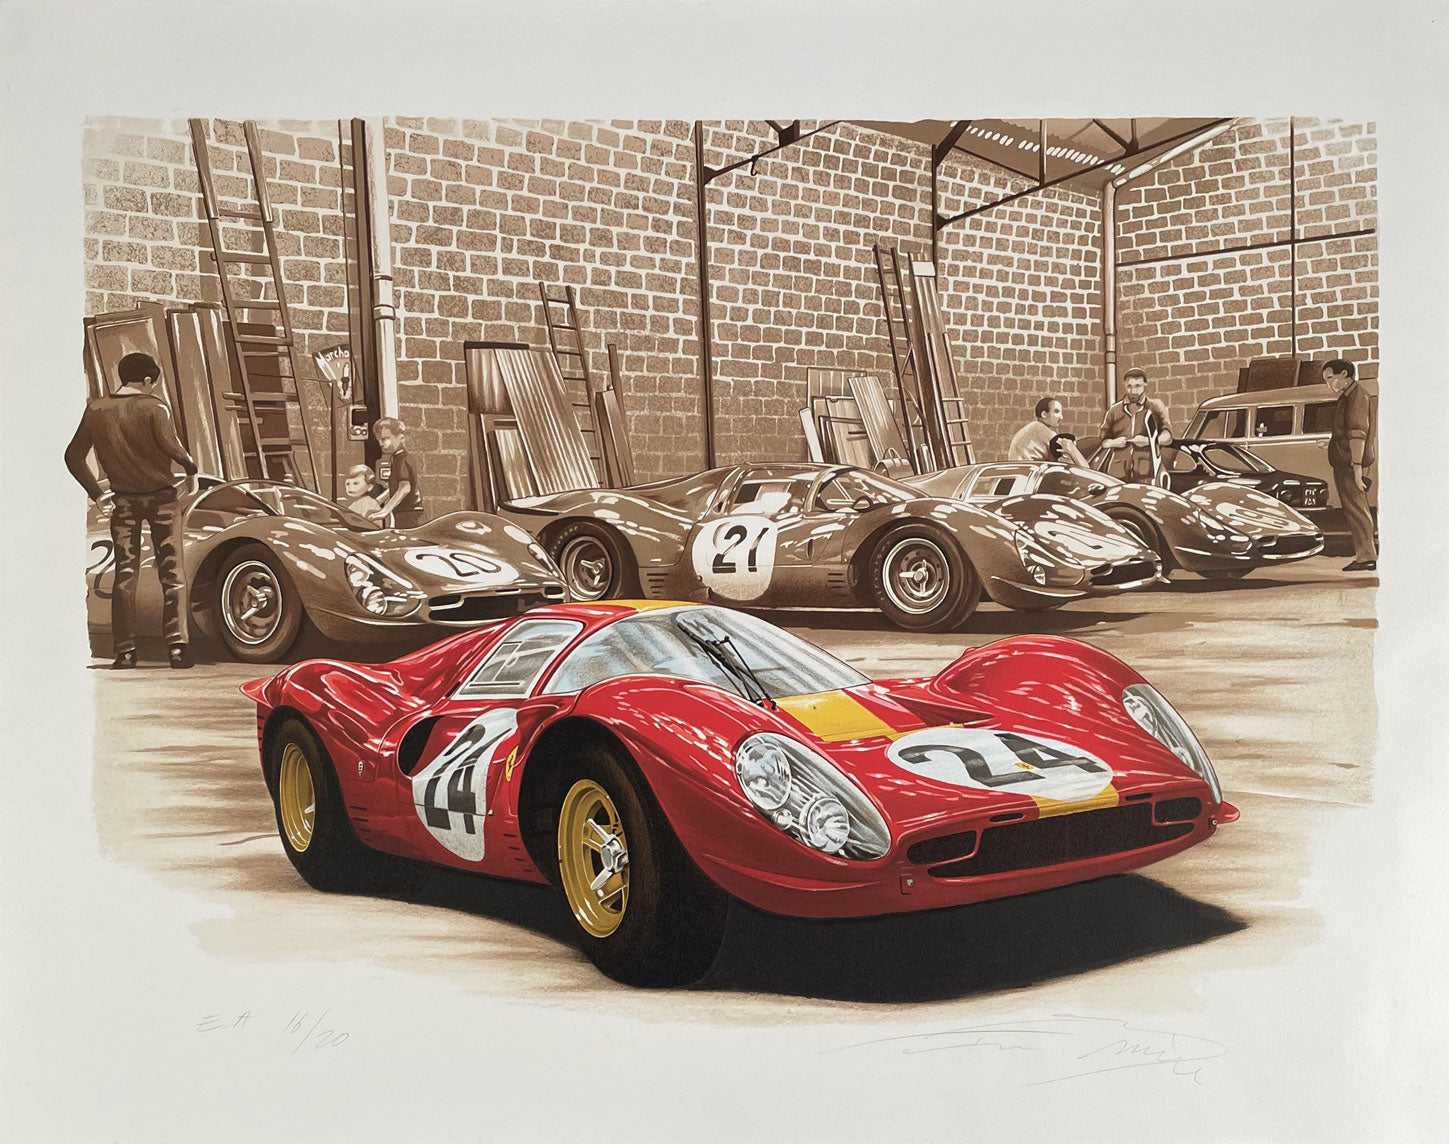 Ferrari garage at 1967 Le Mans print by Francois Bruere